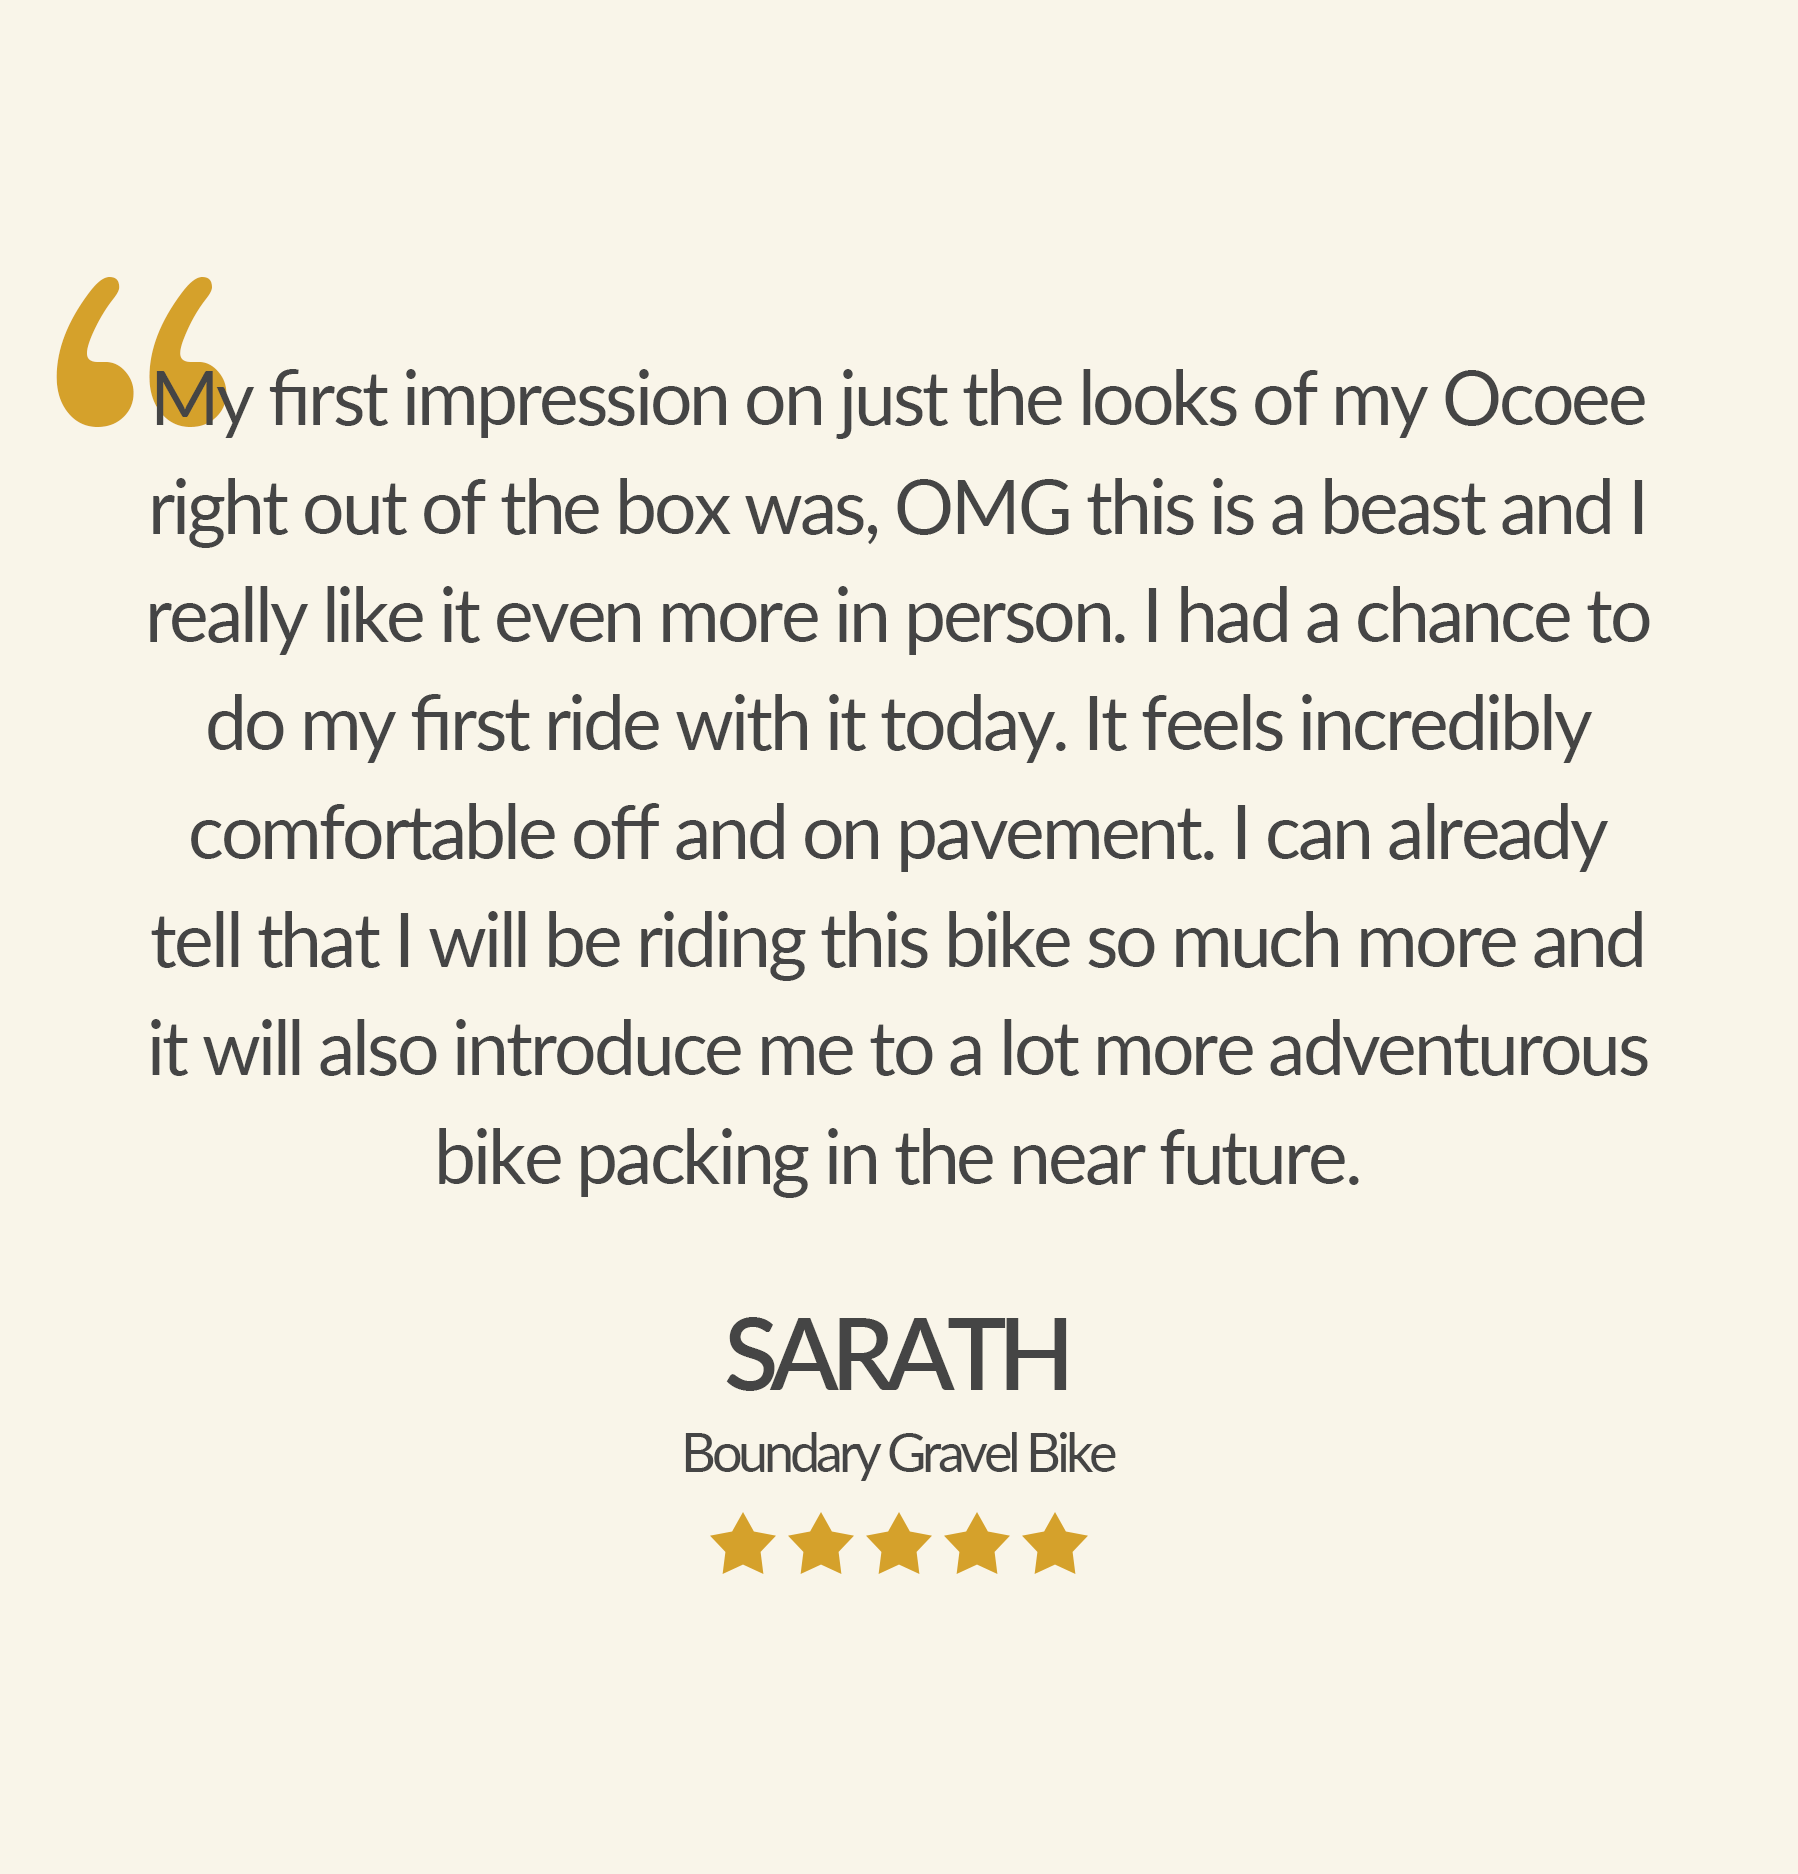 Check out what customers have said about their Ocoee bikes!